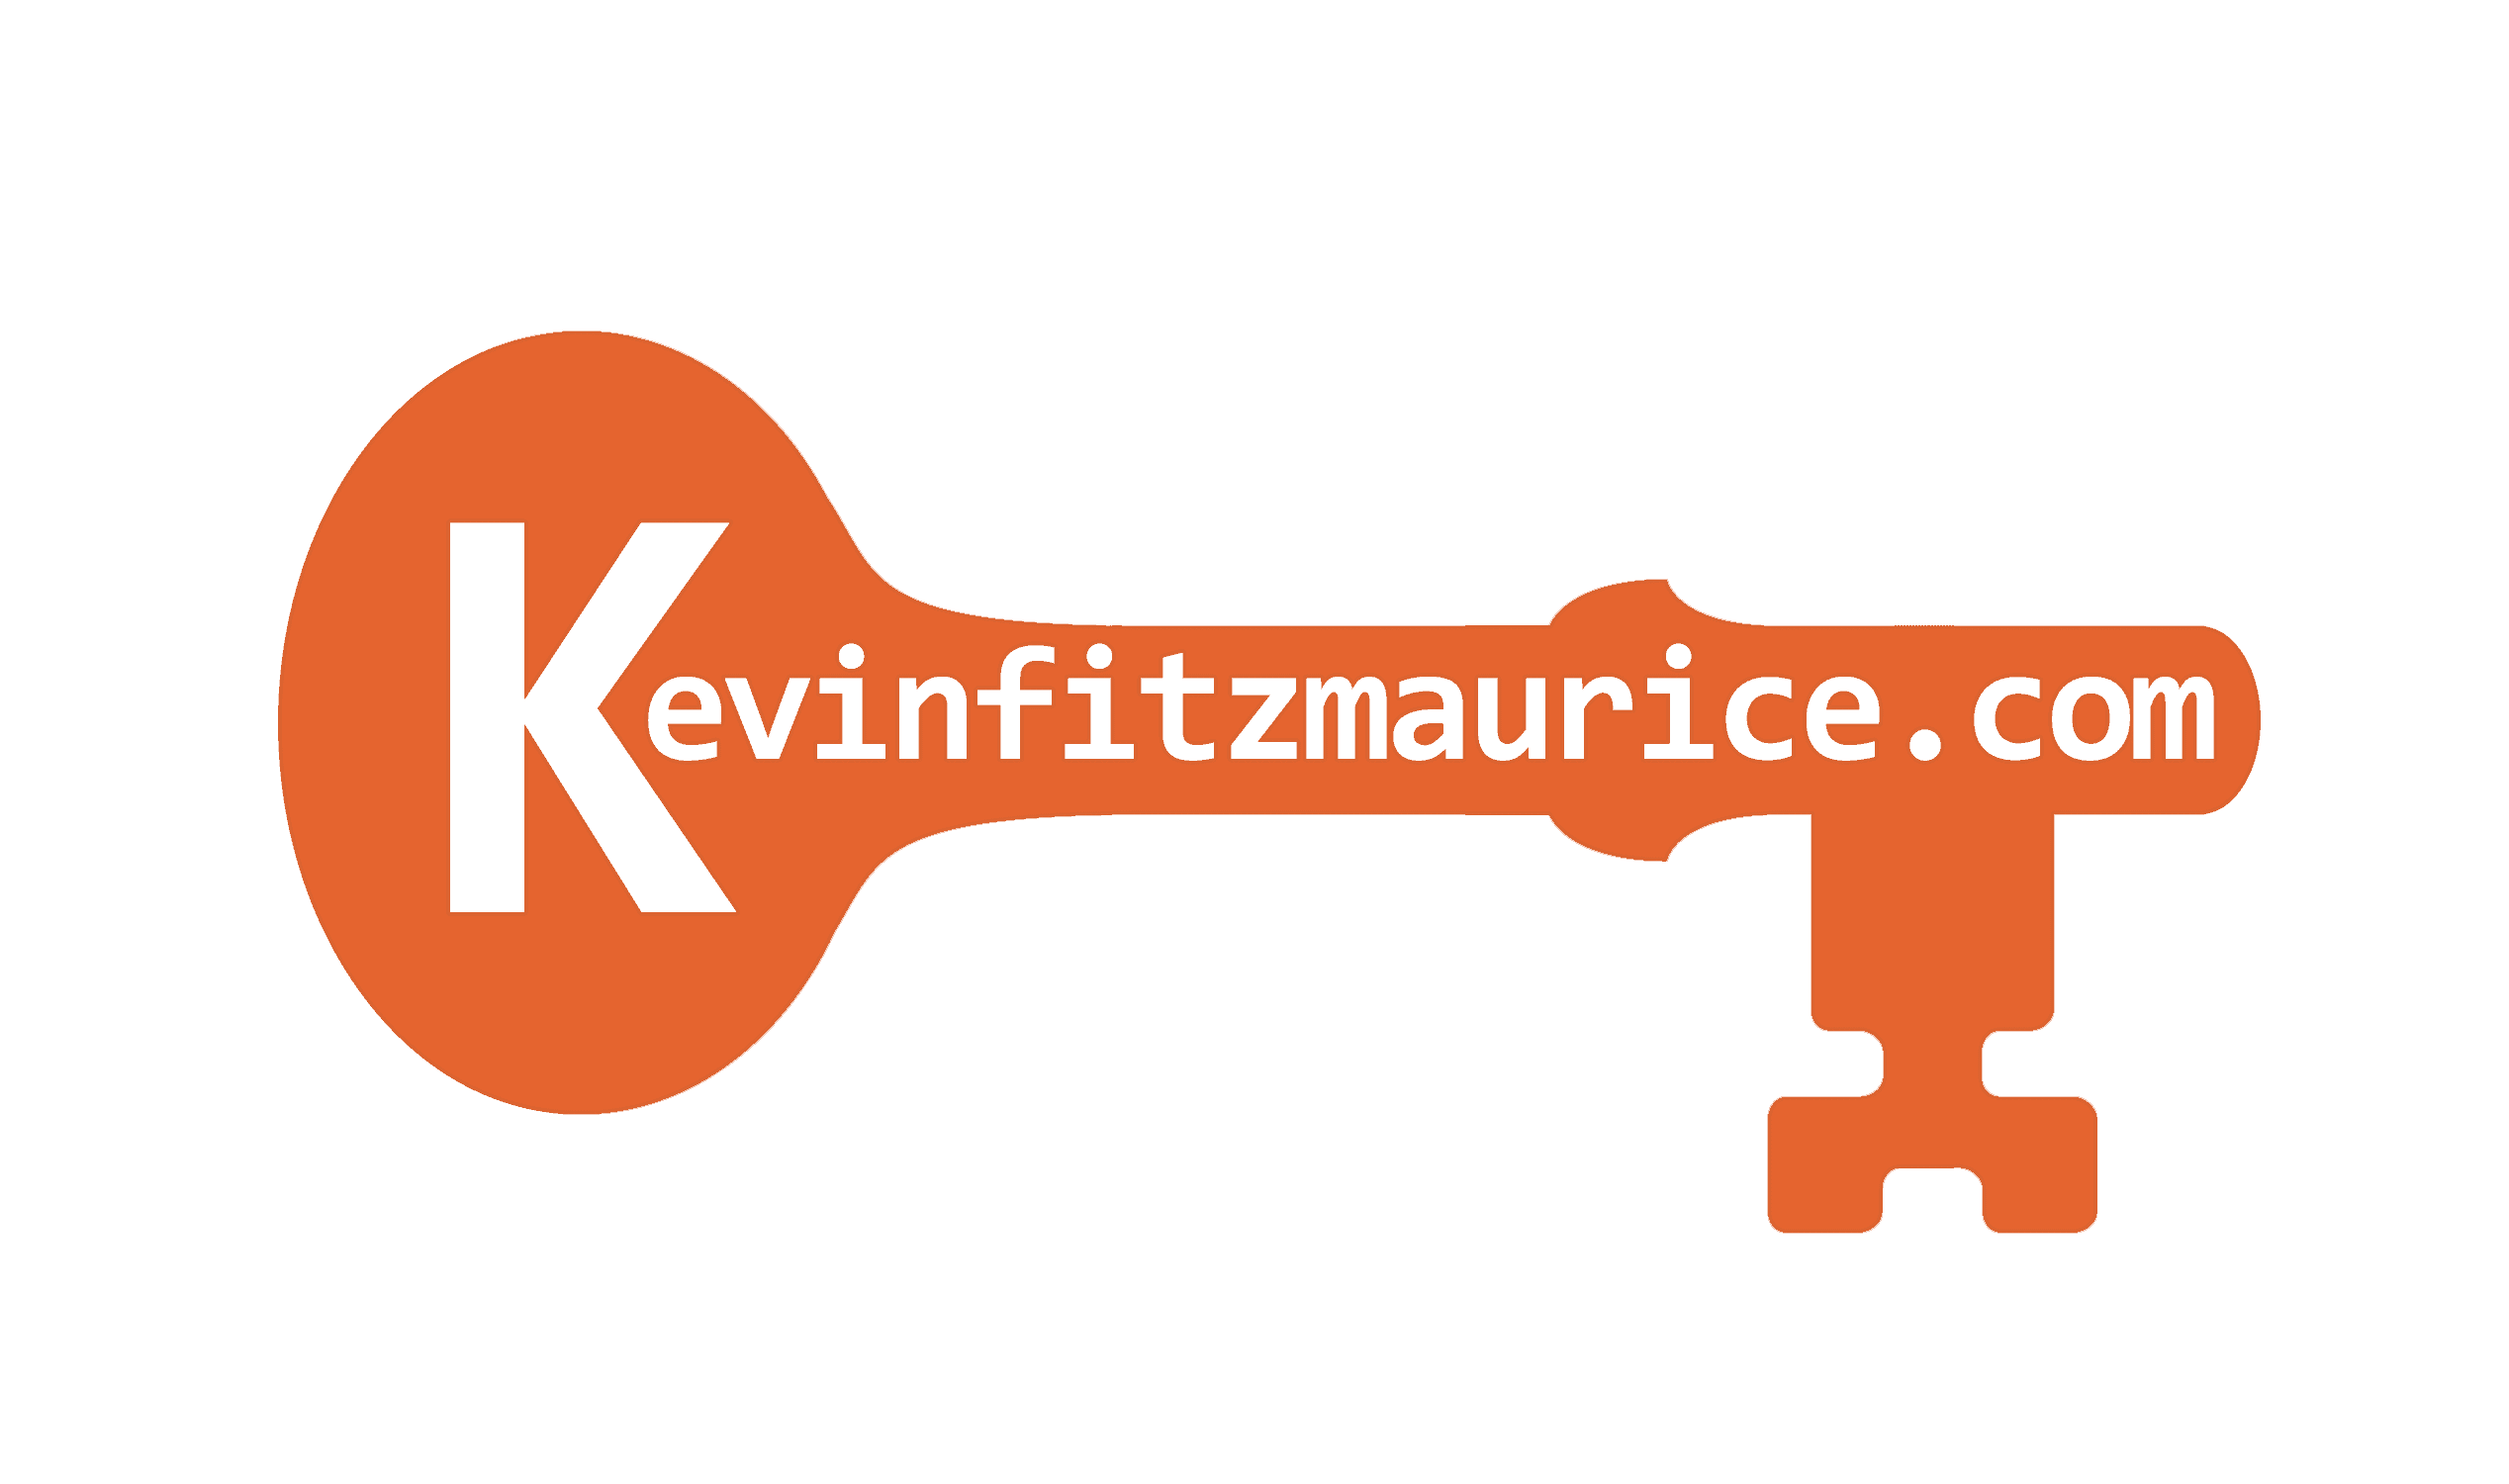 logo Kevin's website key image